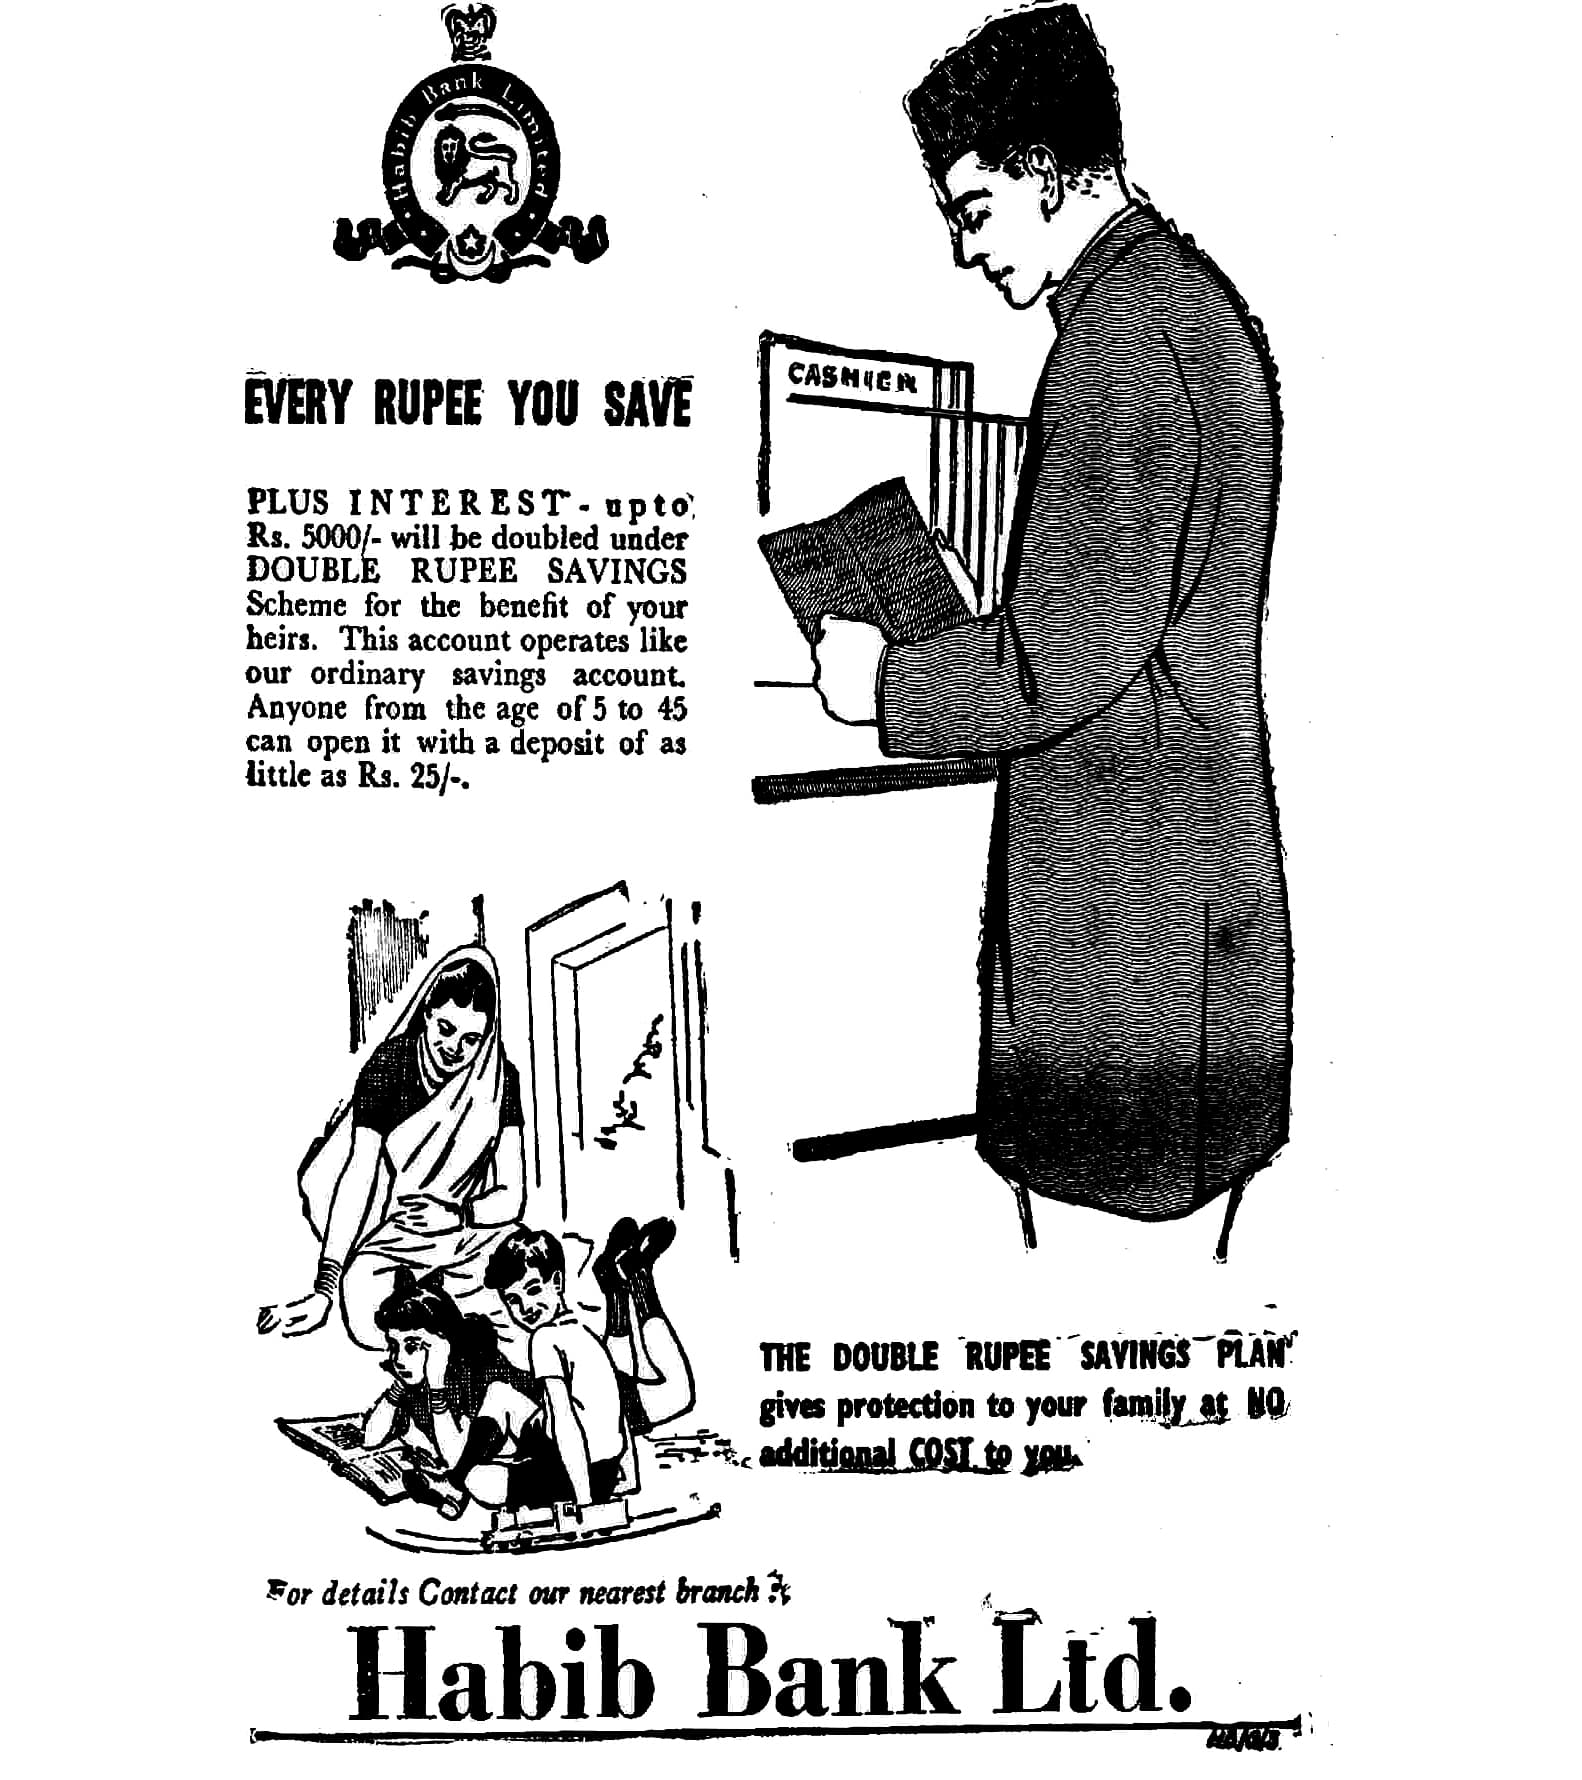 HBL's ad from 1957